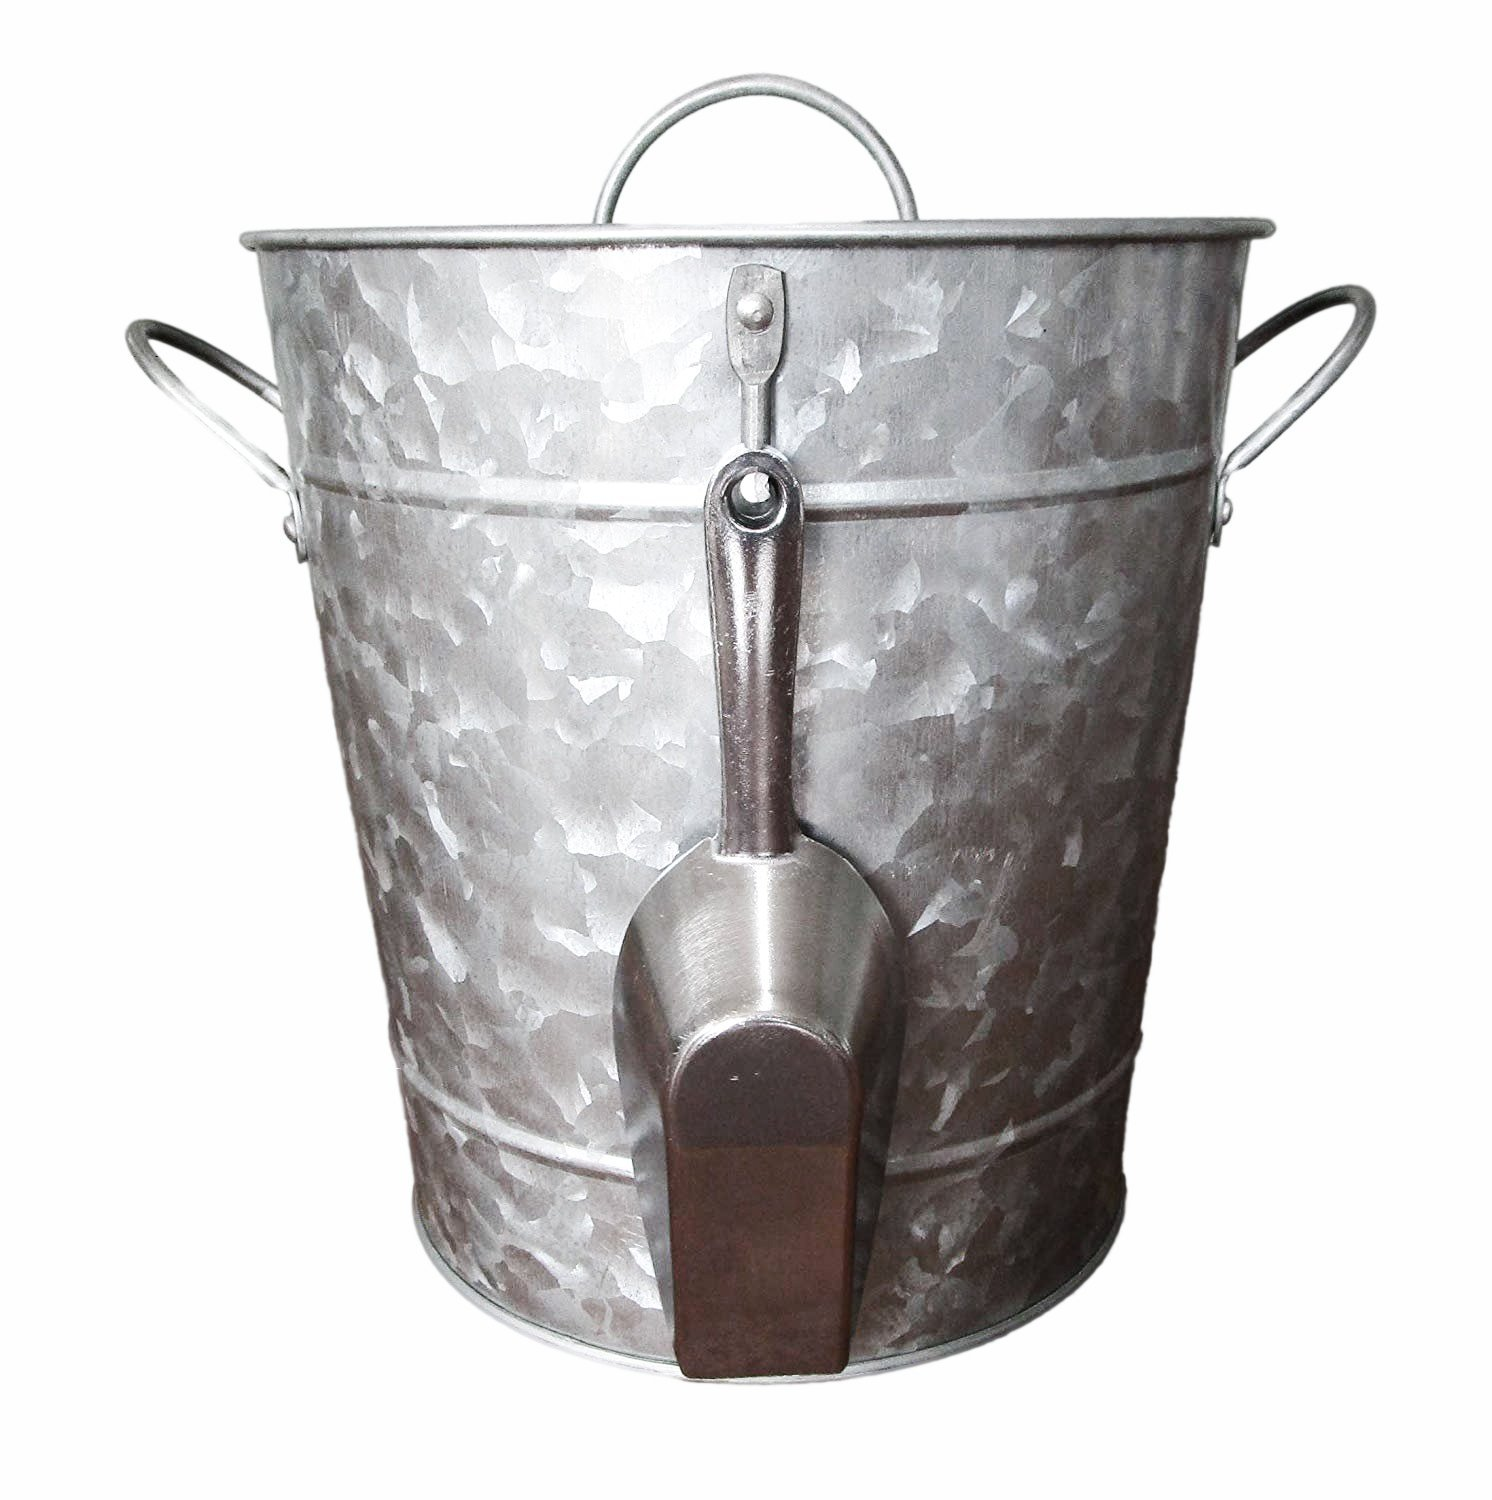 Galvanized Metal Ice Bucket and Scoop - Steel Construction - Plastic Insert - Lid Included - Bonus Chalkboard Labels and Marker